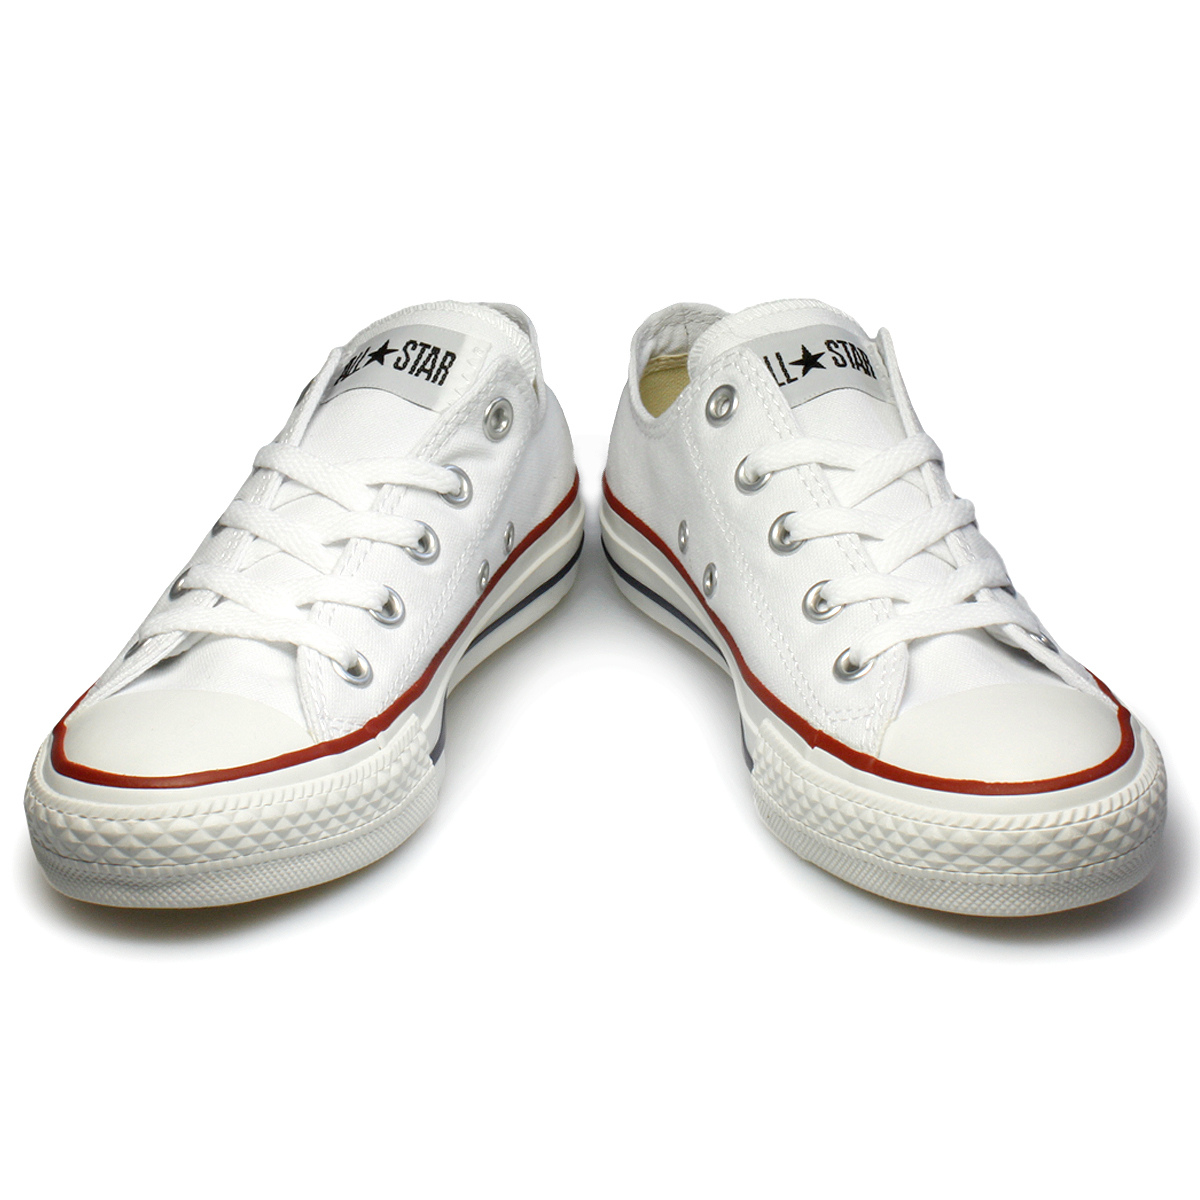 converse all star lo white canvas trainers sneakers shoes mens womens size 3 12 ebay. Black Bedroom Furniture Sets. Home Design Ideas